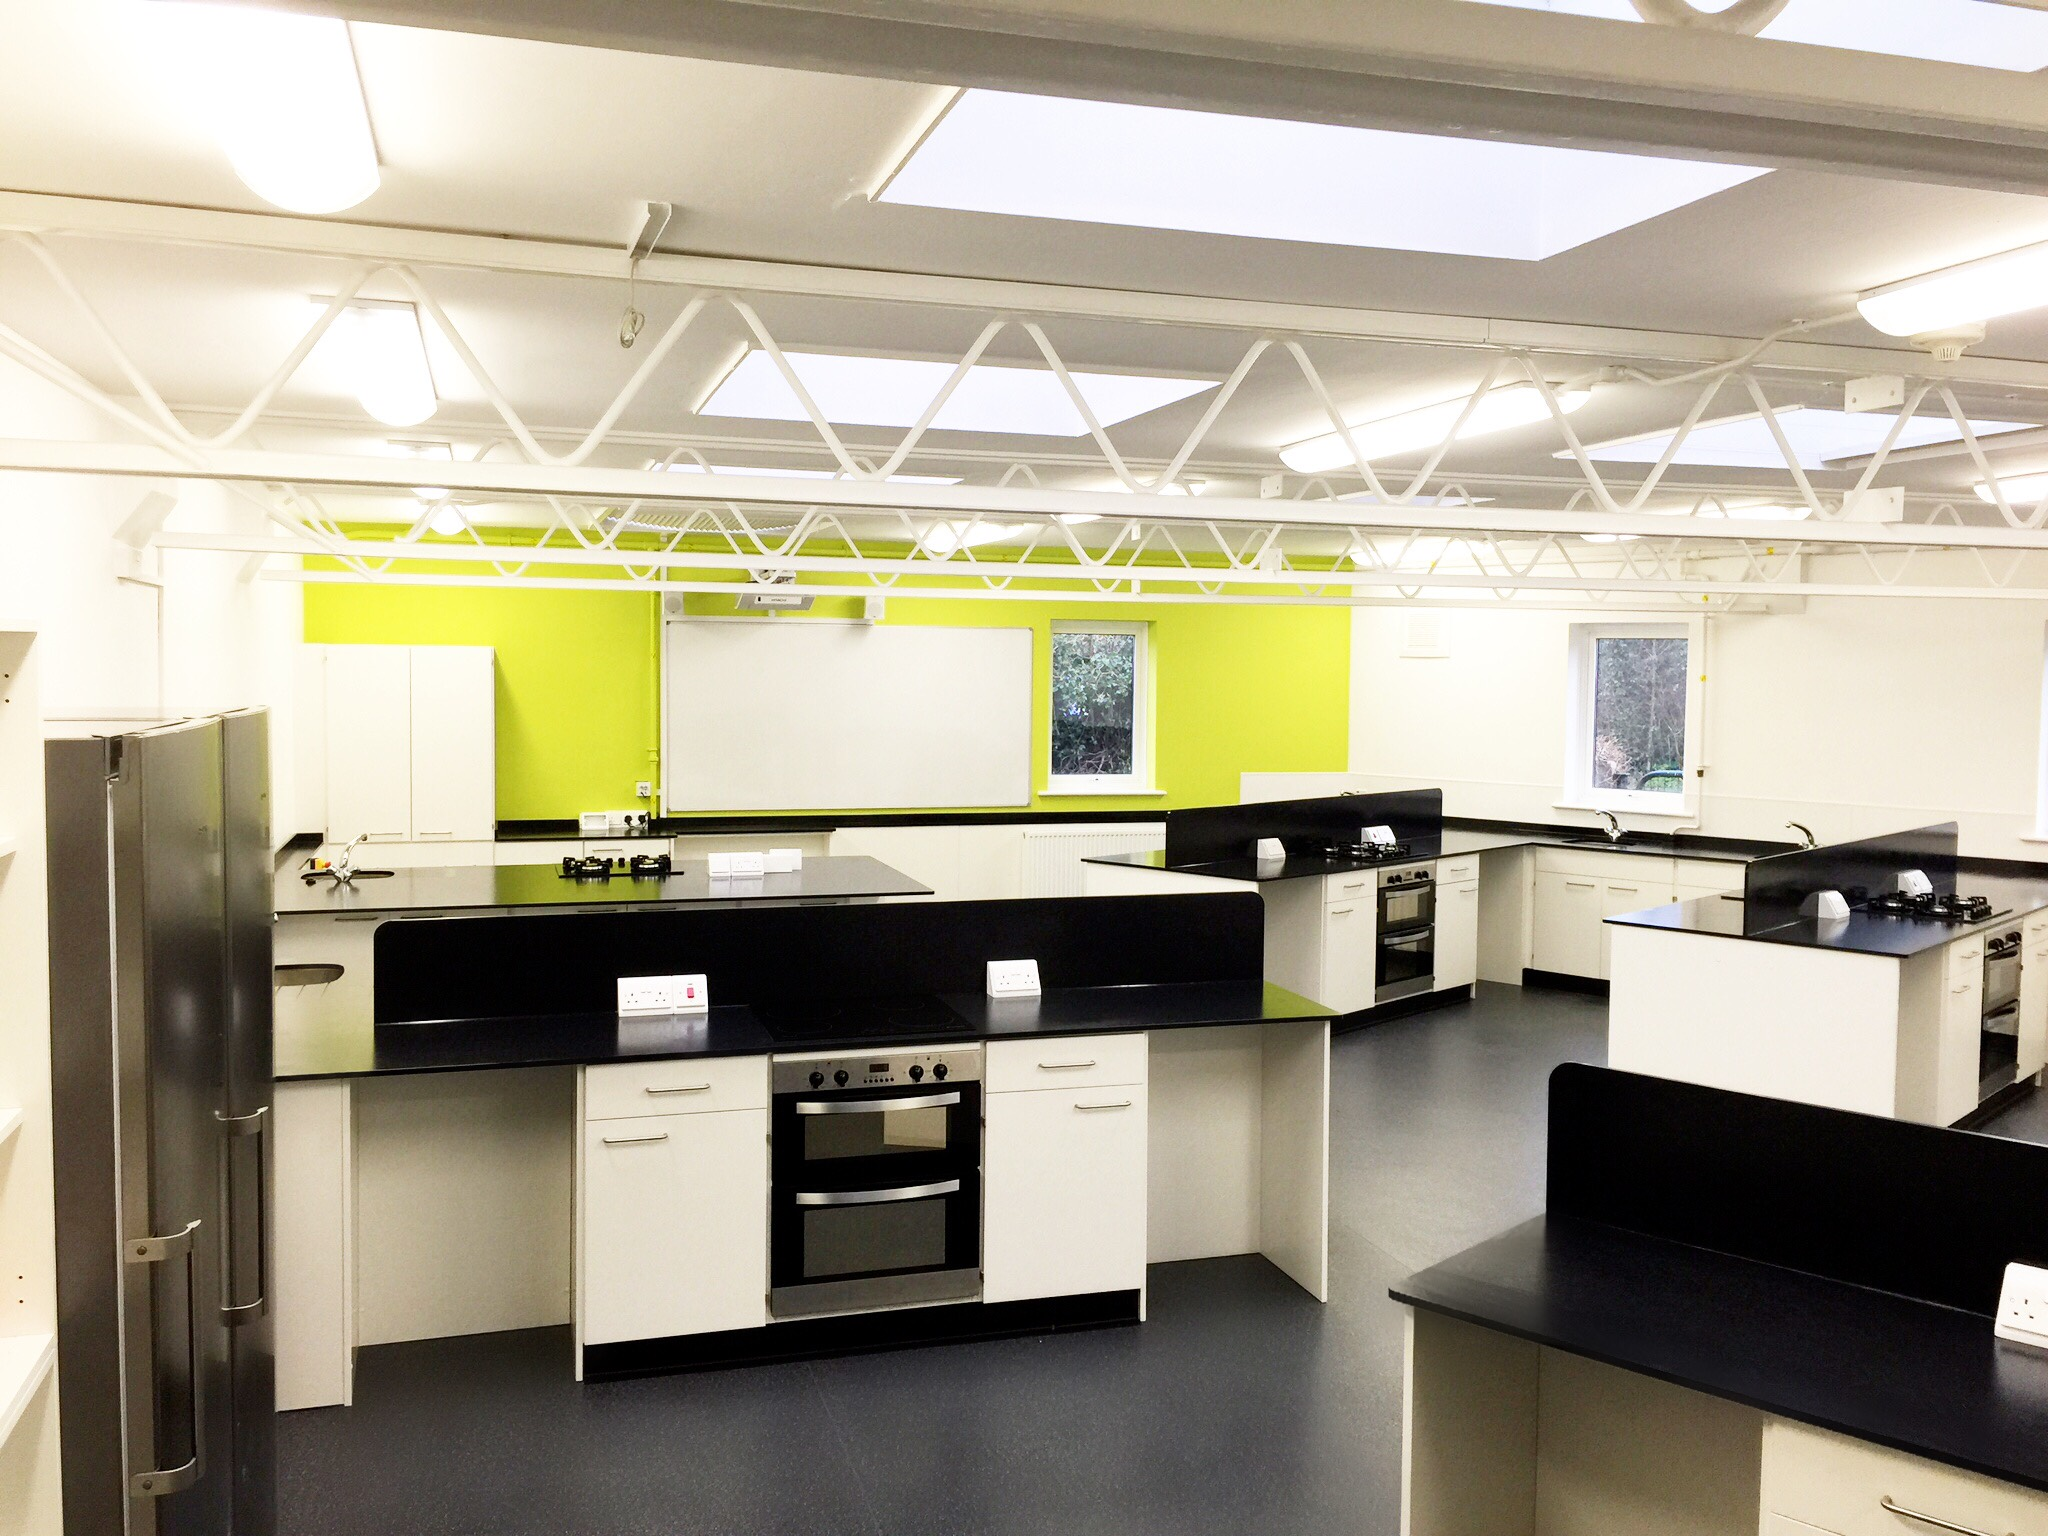 Educational Food Tech Furniture AJT Associated Joinery Techniques.jpg